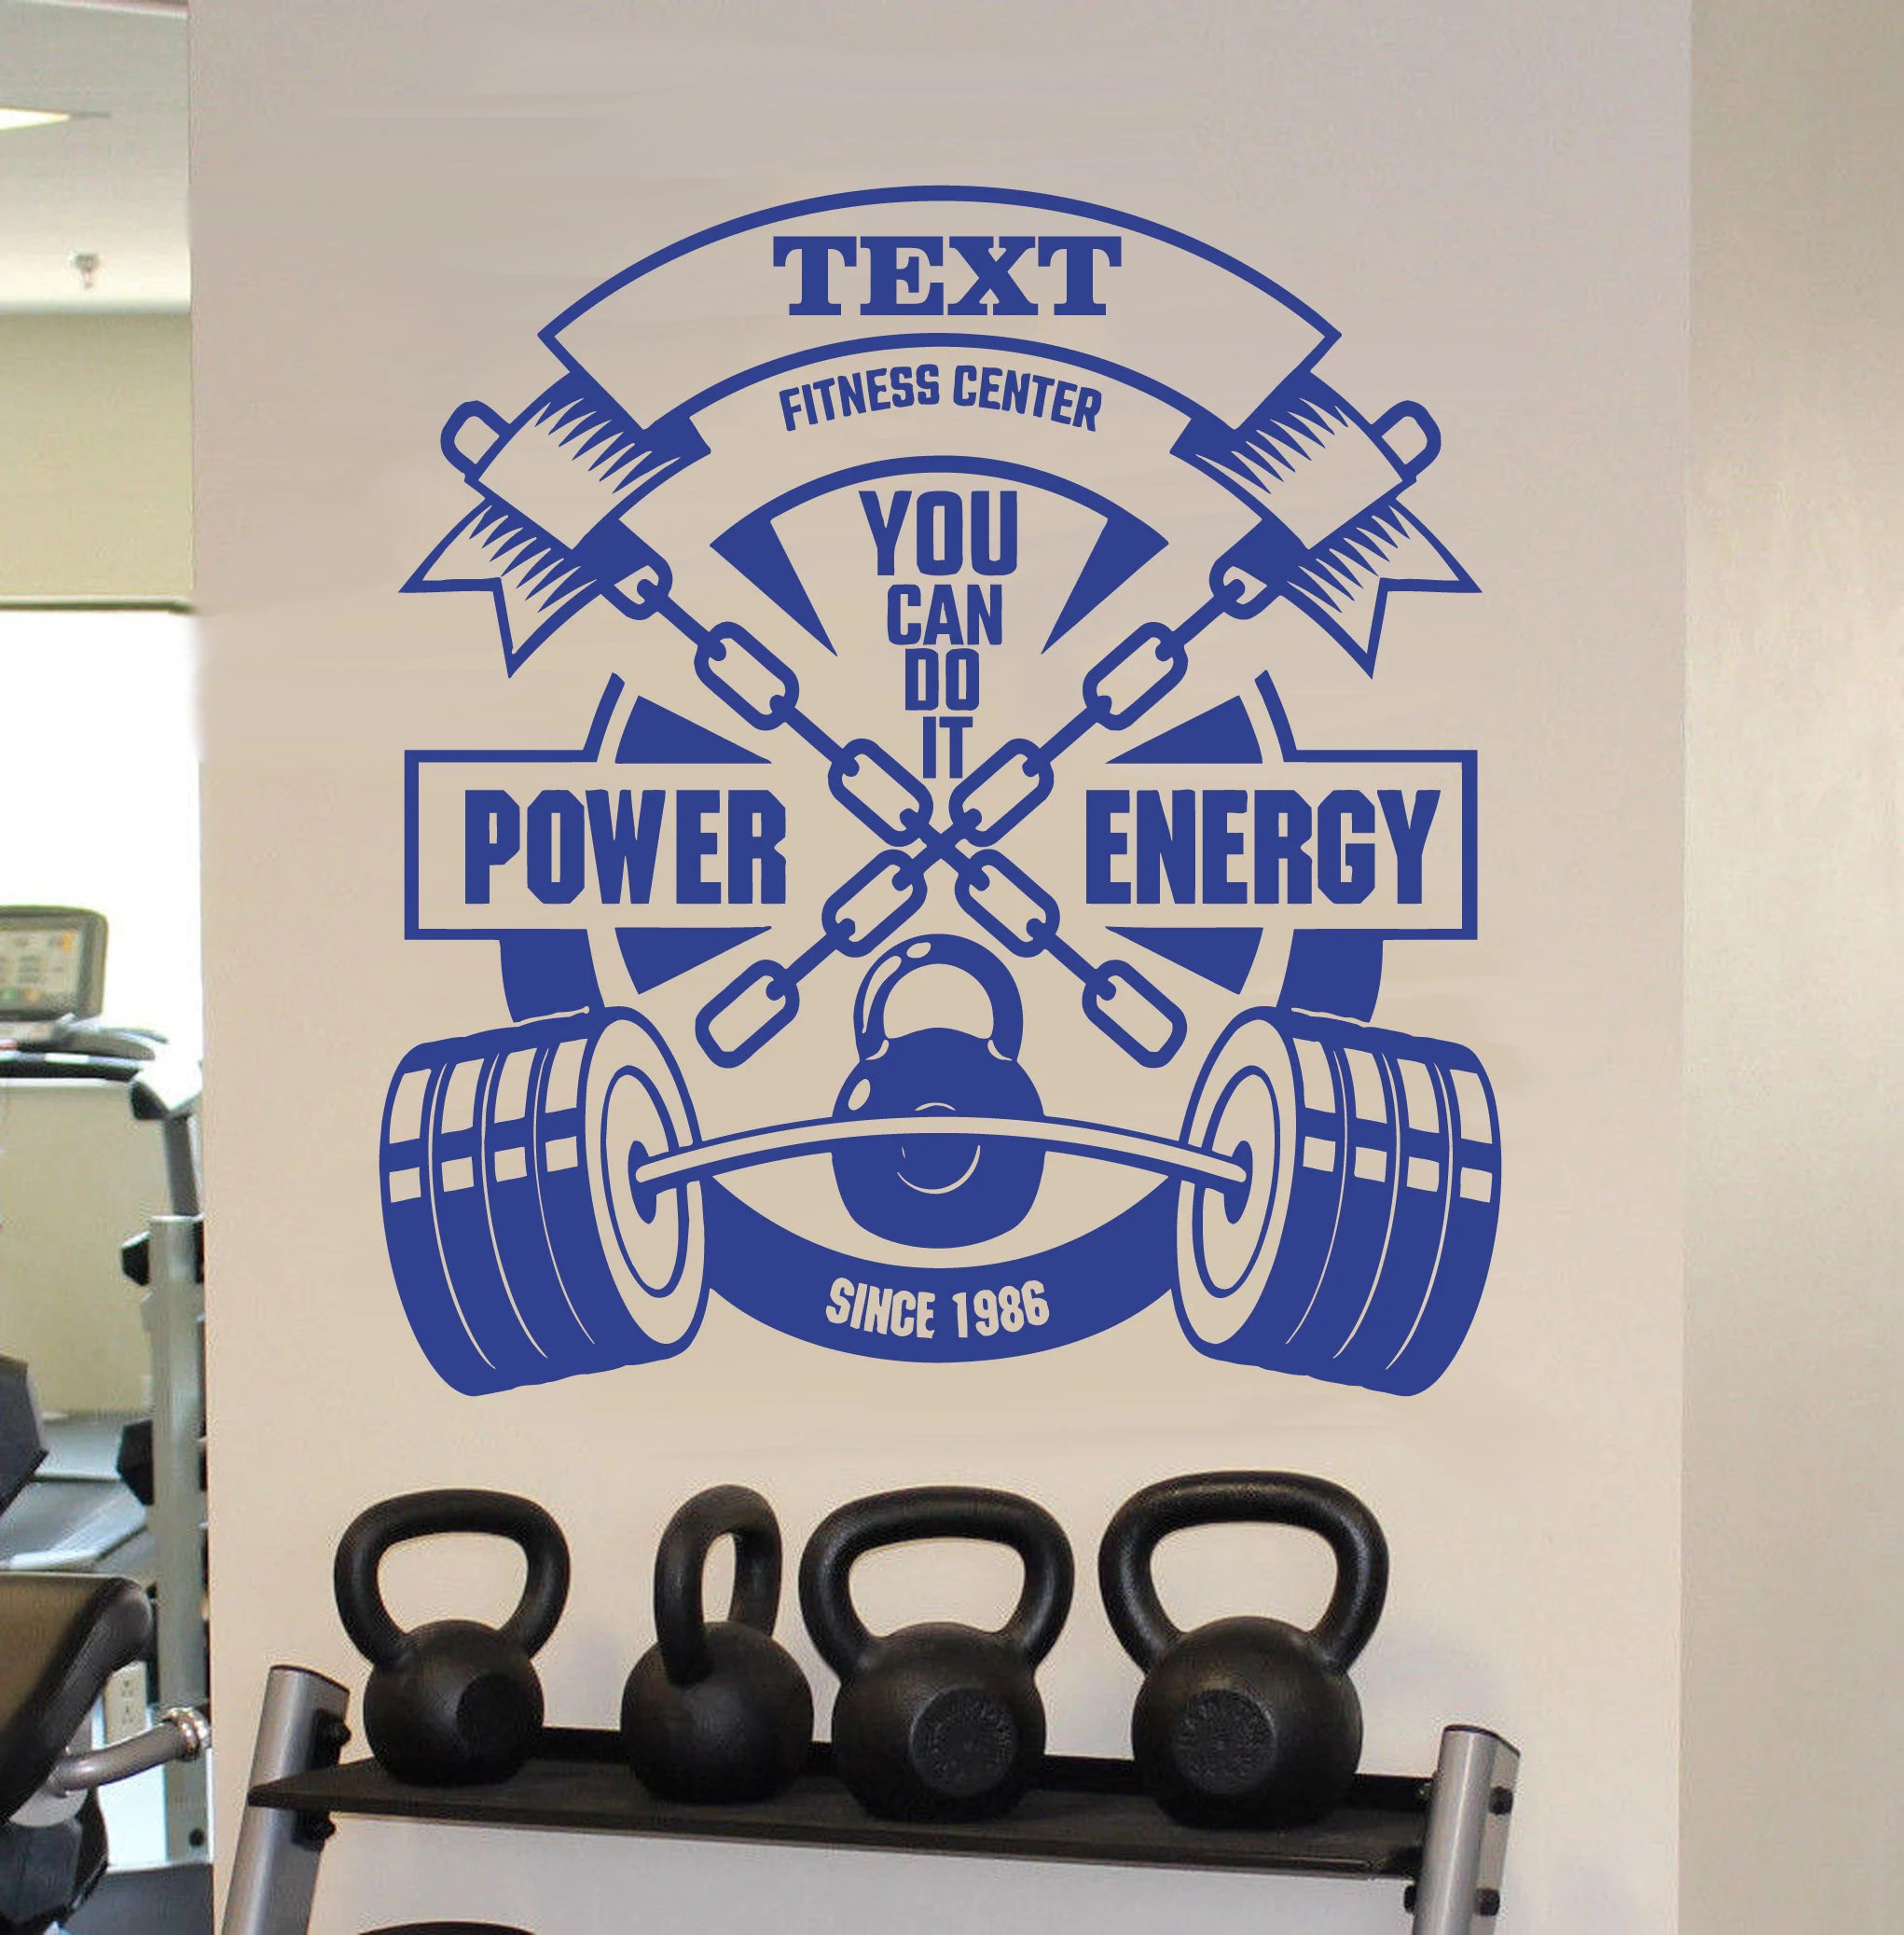 Garage Gym Wall Decor Personalized Gym Wall Decal Fitness Center Wall Sticker Garage Gym Wall Decor Crossfit Motivation Wall Decal Gym Wall Mural Art Se084